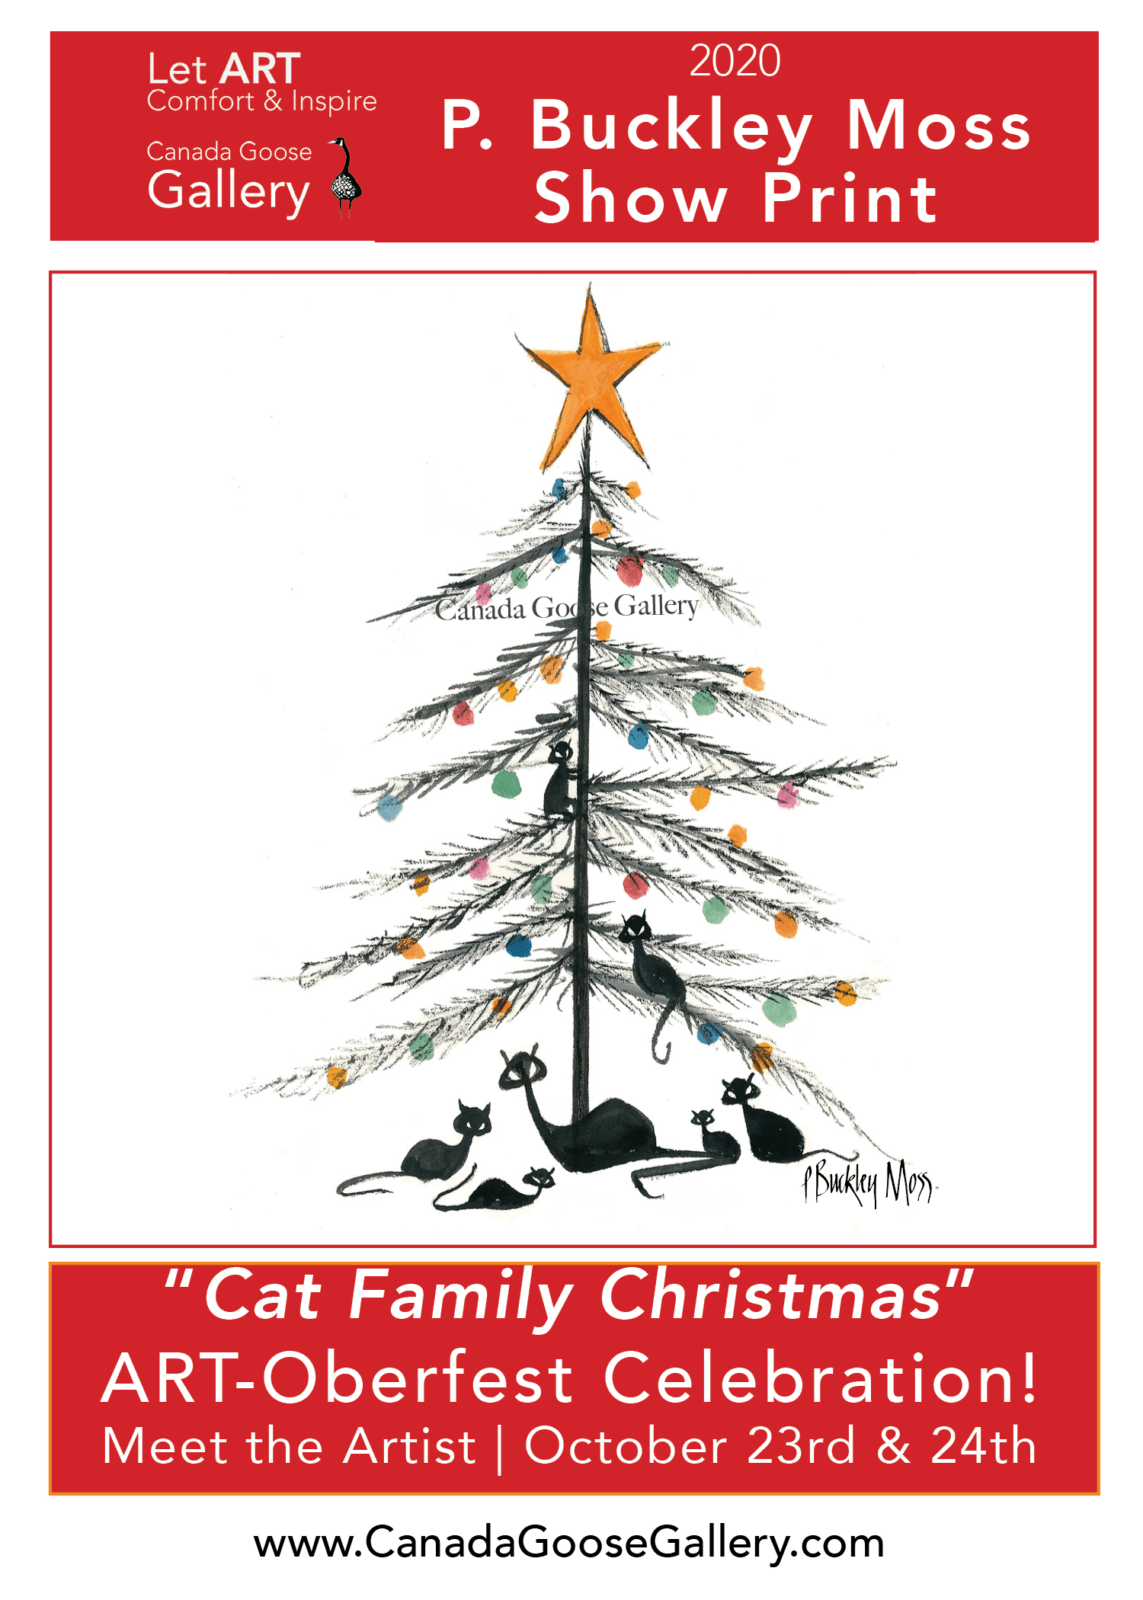 Cat Family Christmas limited edition print available exclusively at Canada Goose Gallery and created for P Buckley Moss in person event October 2020.